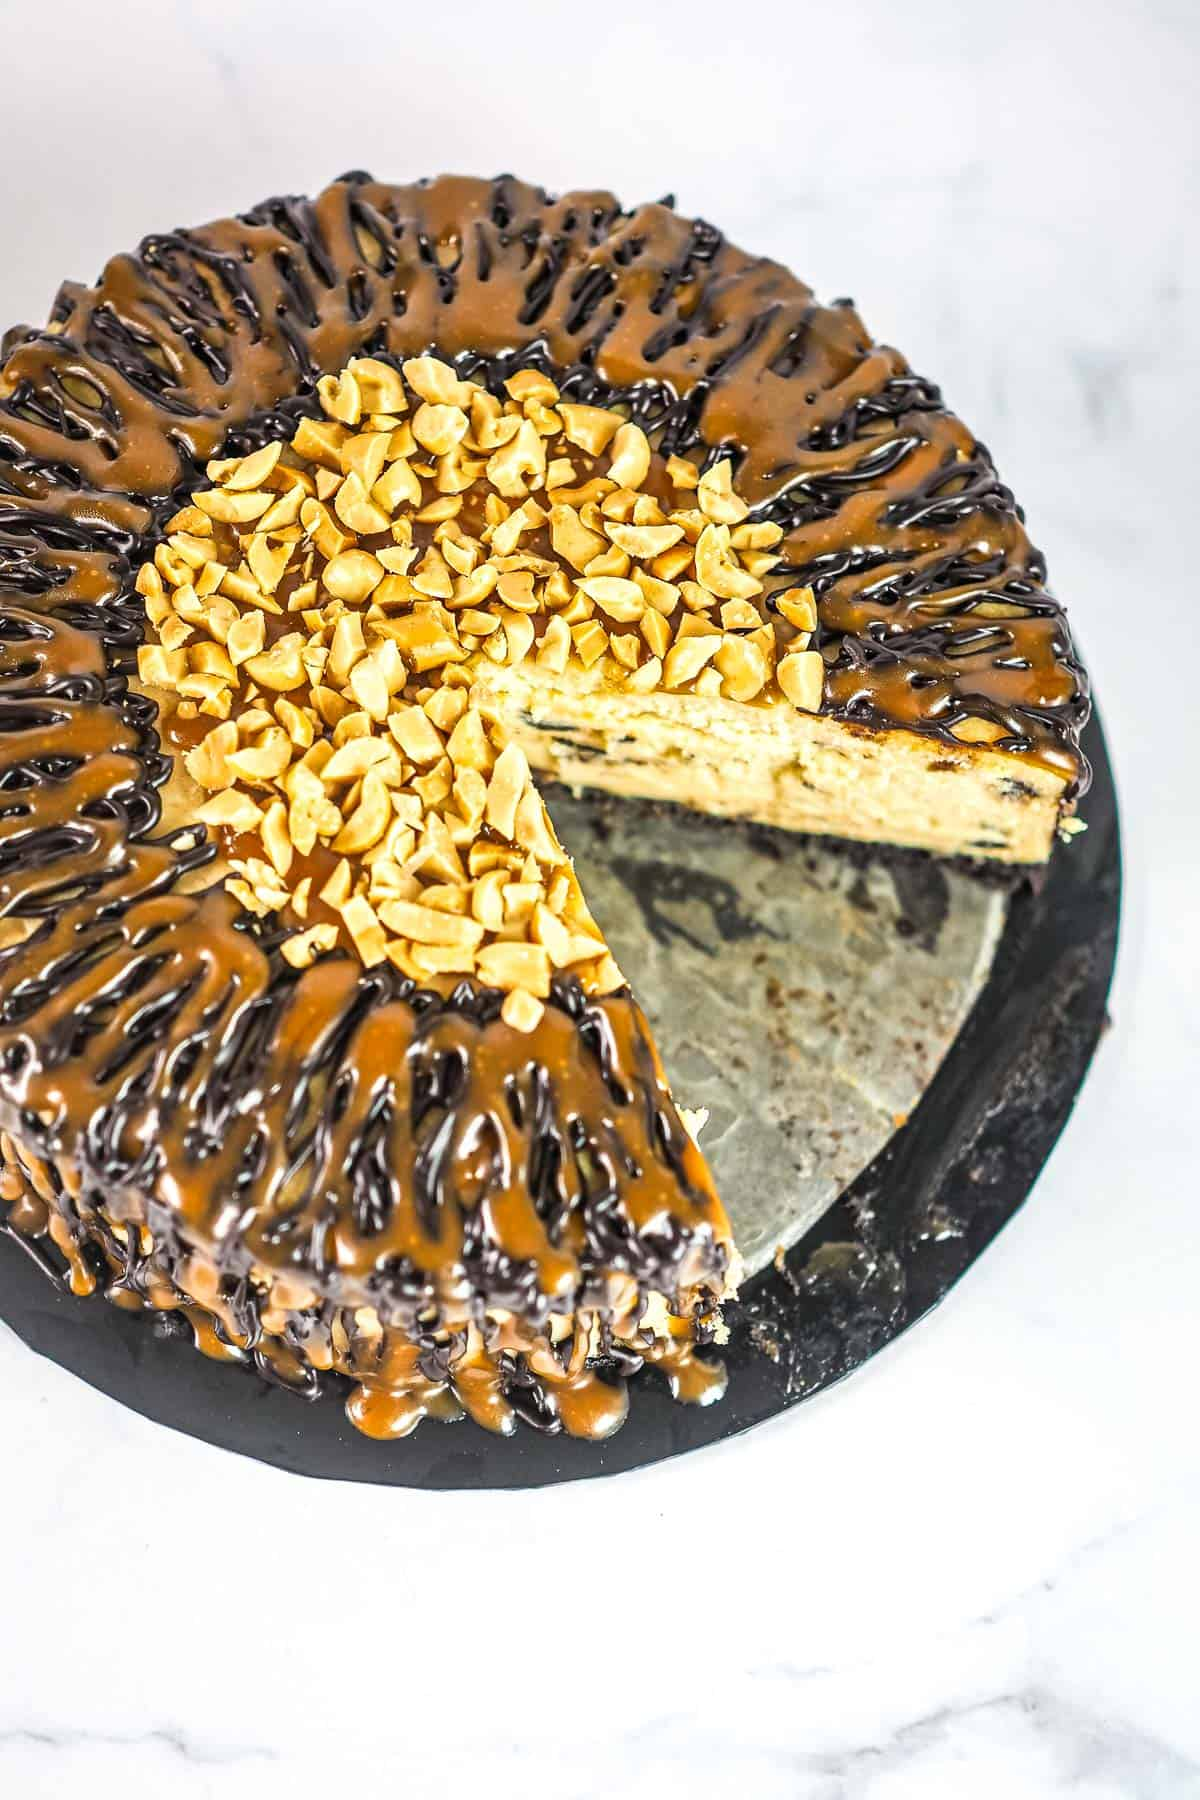 A round chocolate peanut butter cheesecake with caramel and chocolate drizzle and chopped peanut center. A slice of the cake is cut out